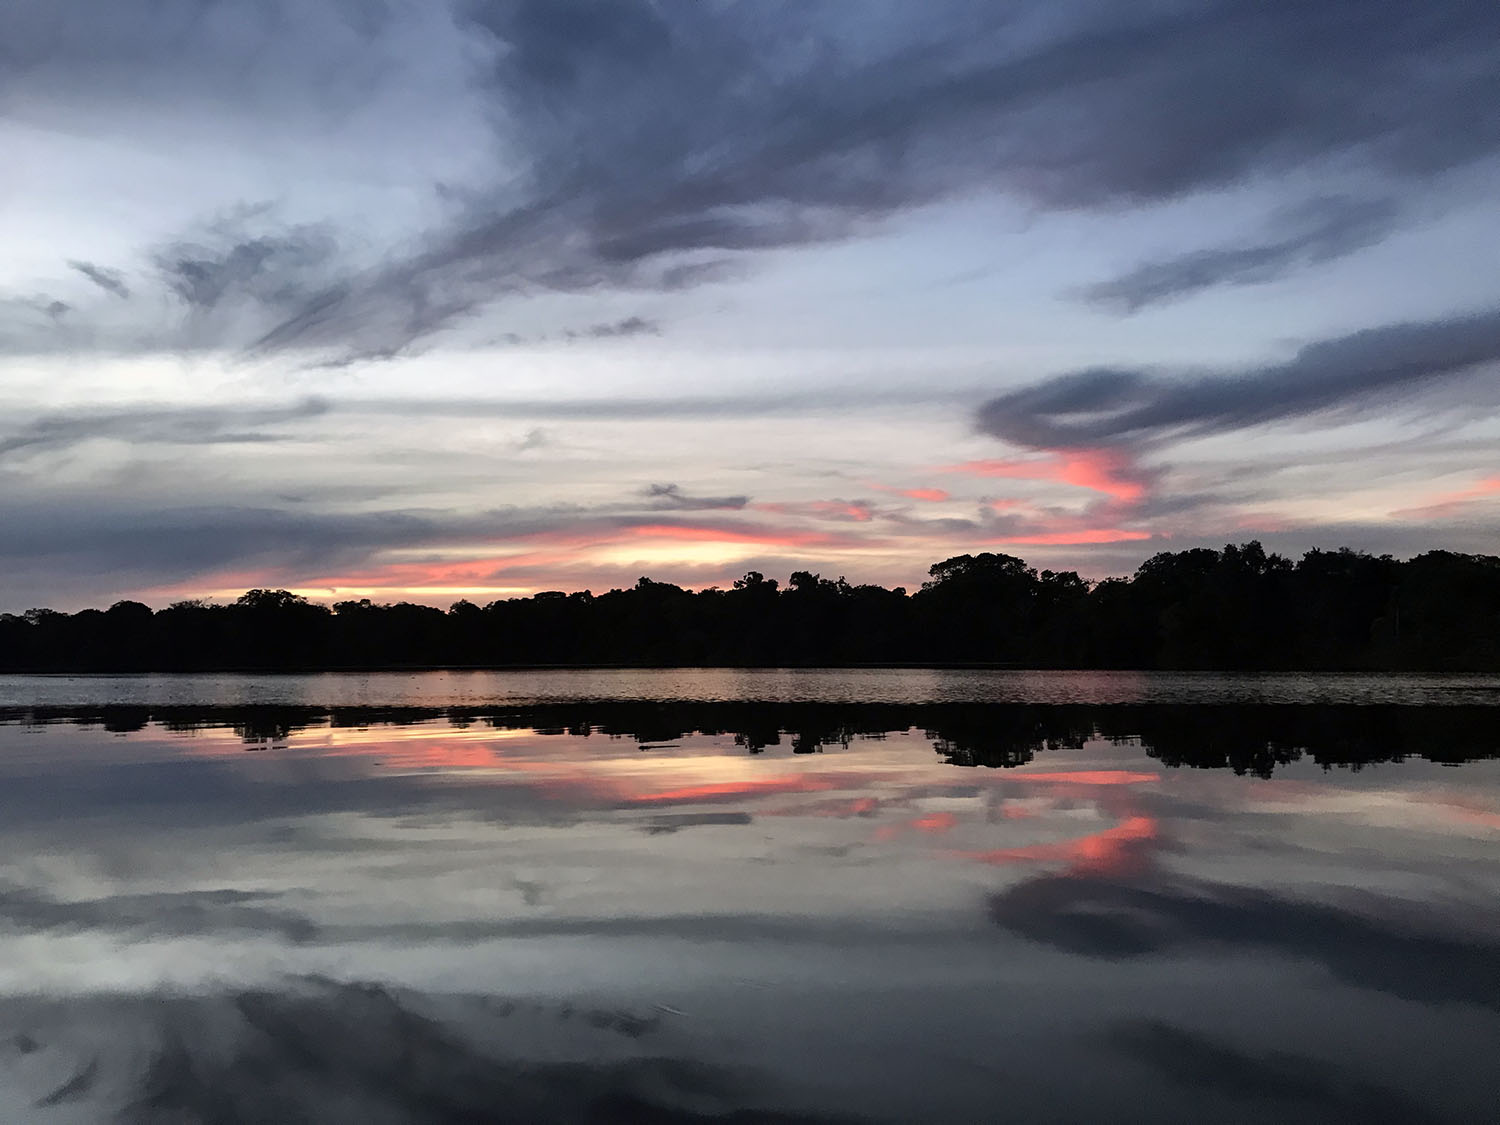 sunset over the lake in the amazon jungle